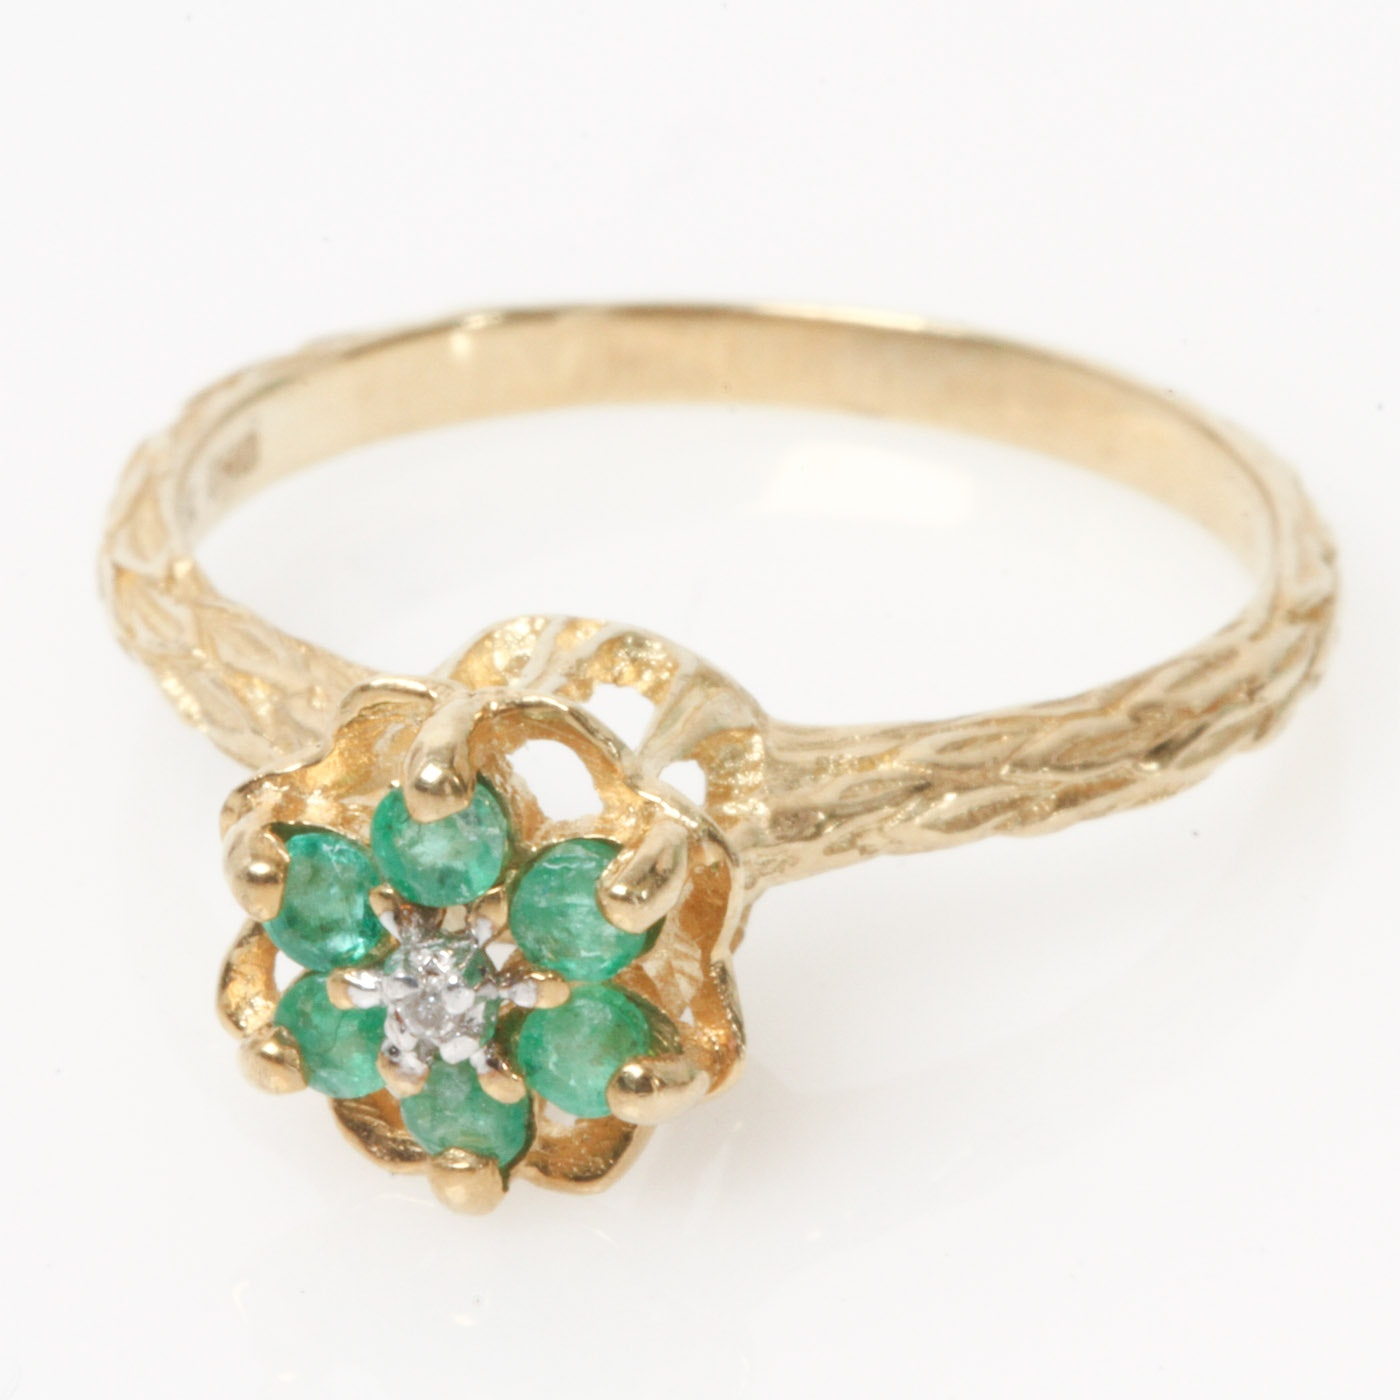 Samuel Aaron Retro 10K Yellow Gold High Set Emerald and Diamond Ring